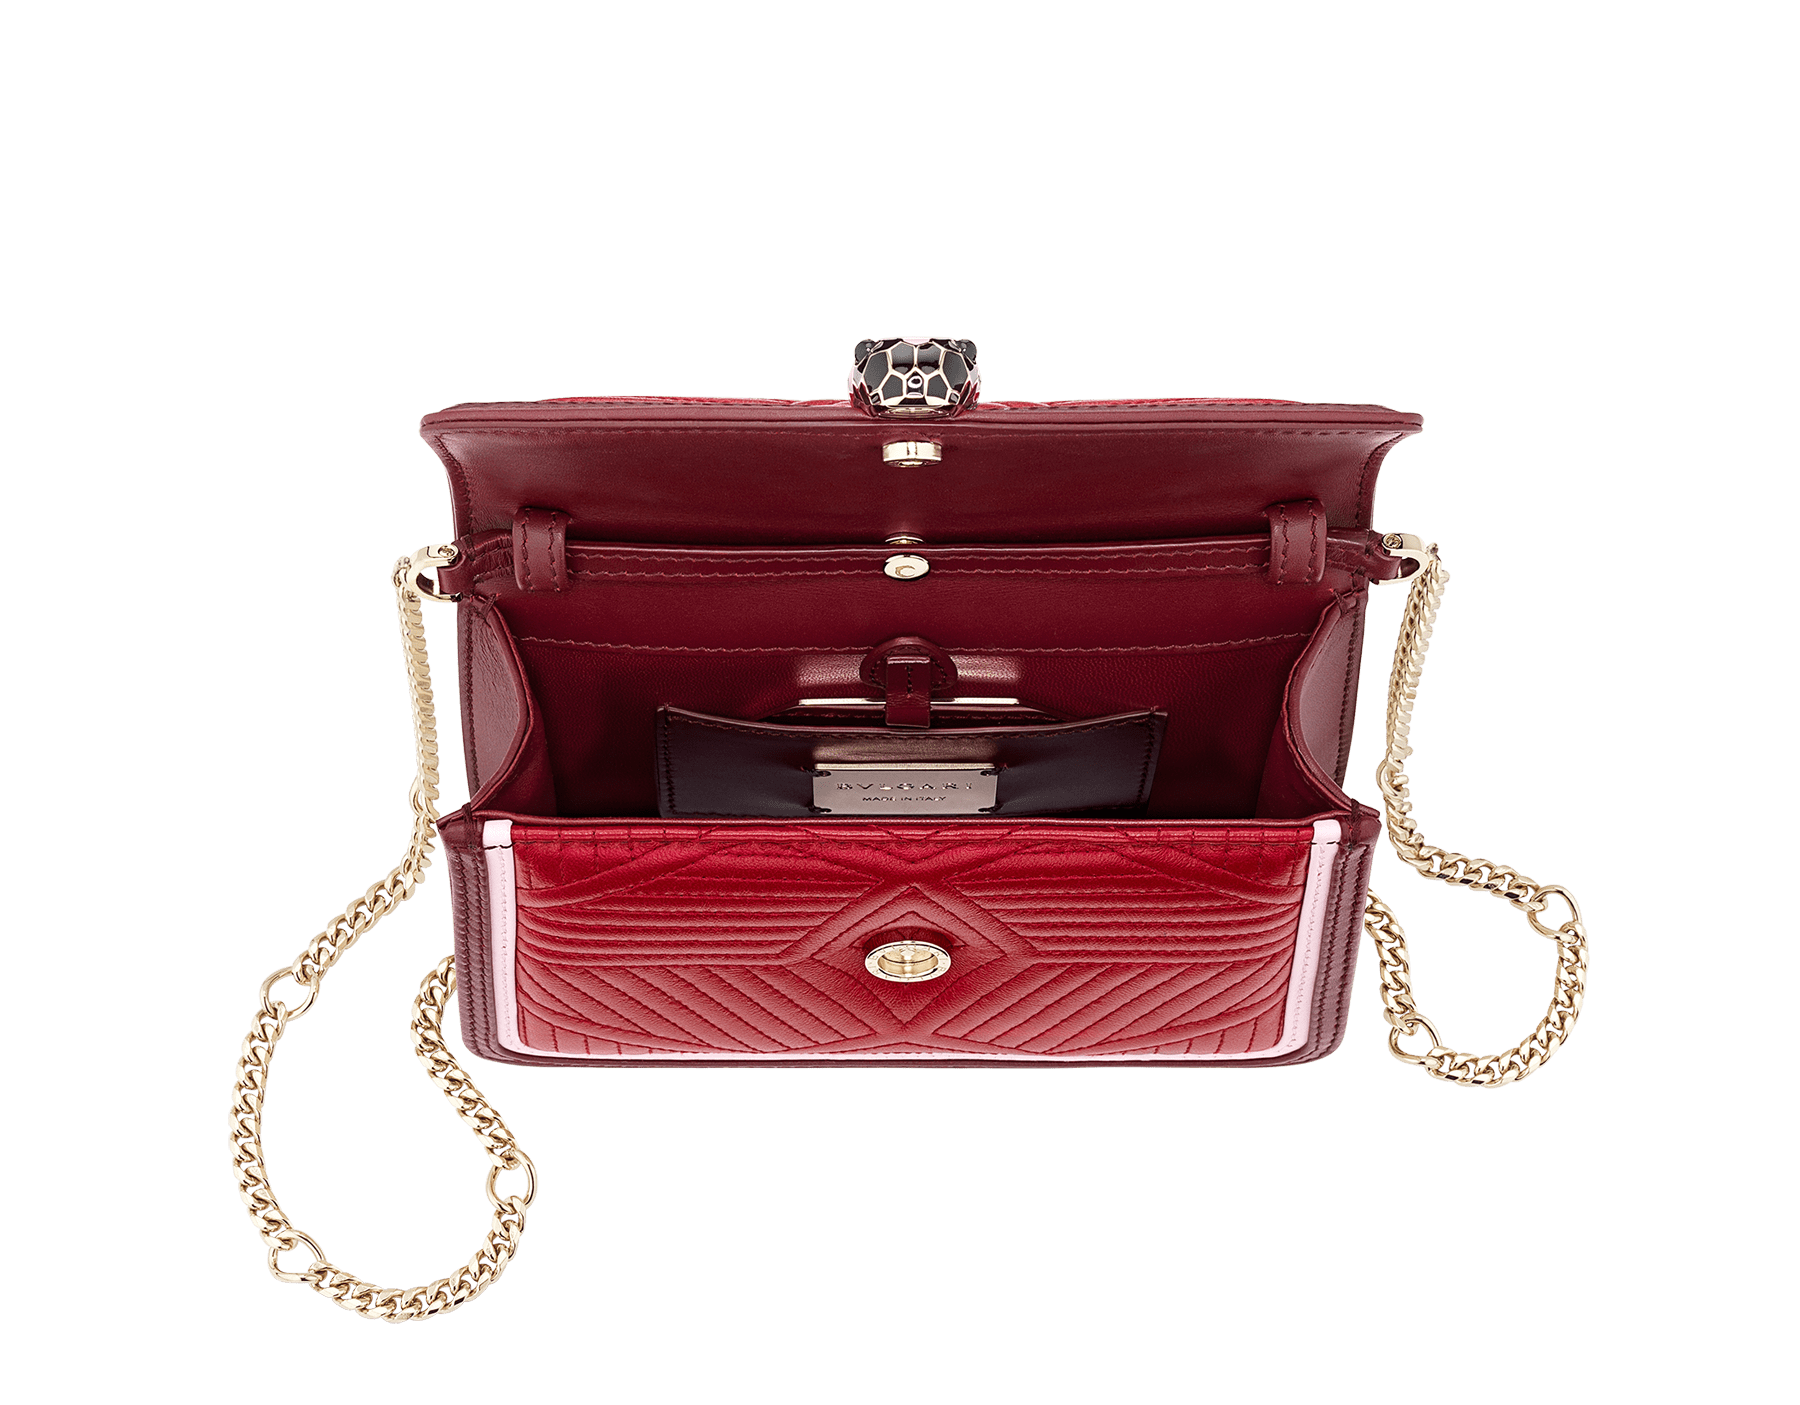 """""""Serpenti Diamond Blast"""" crossbody micro bag in ruby red quilted nappa leather body and Roman garnet calf leather frames. Iconic snakehead closure in light gold plated brass enriched with black and rosa di francia enamel and black onyx eyes. 288845 image 4"""